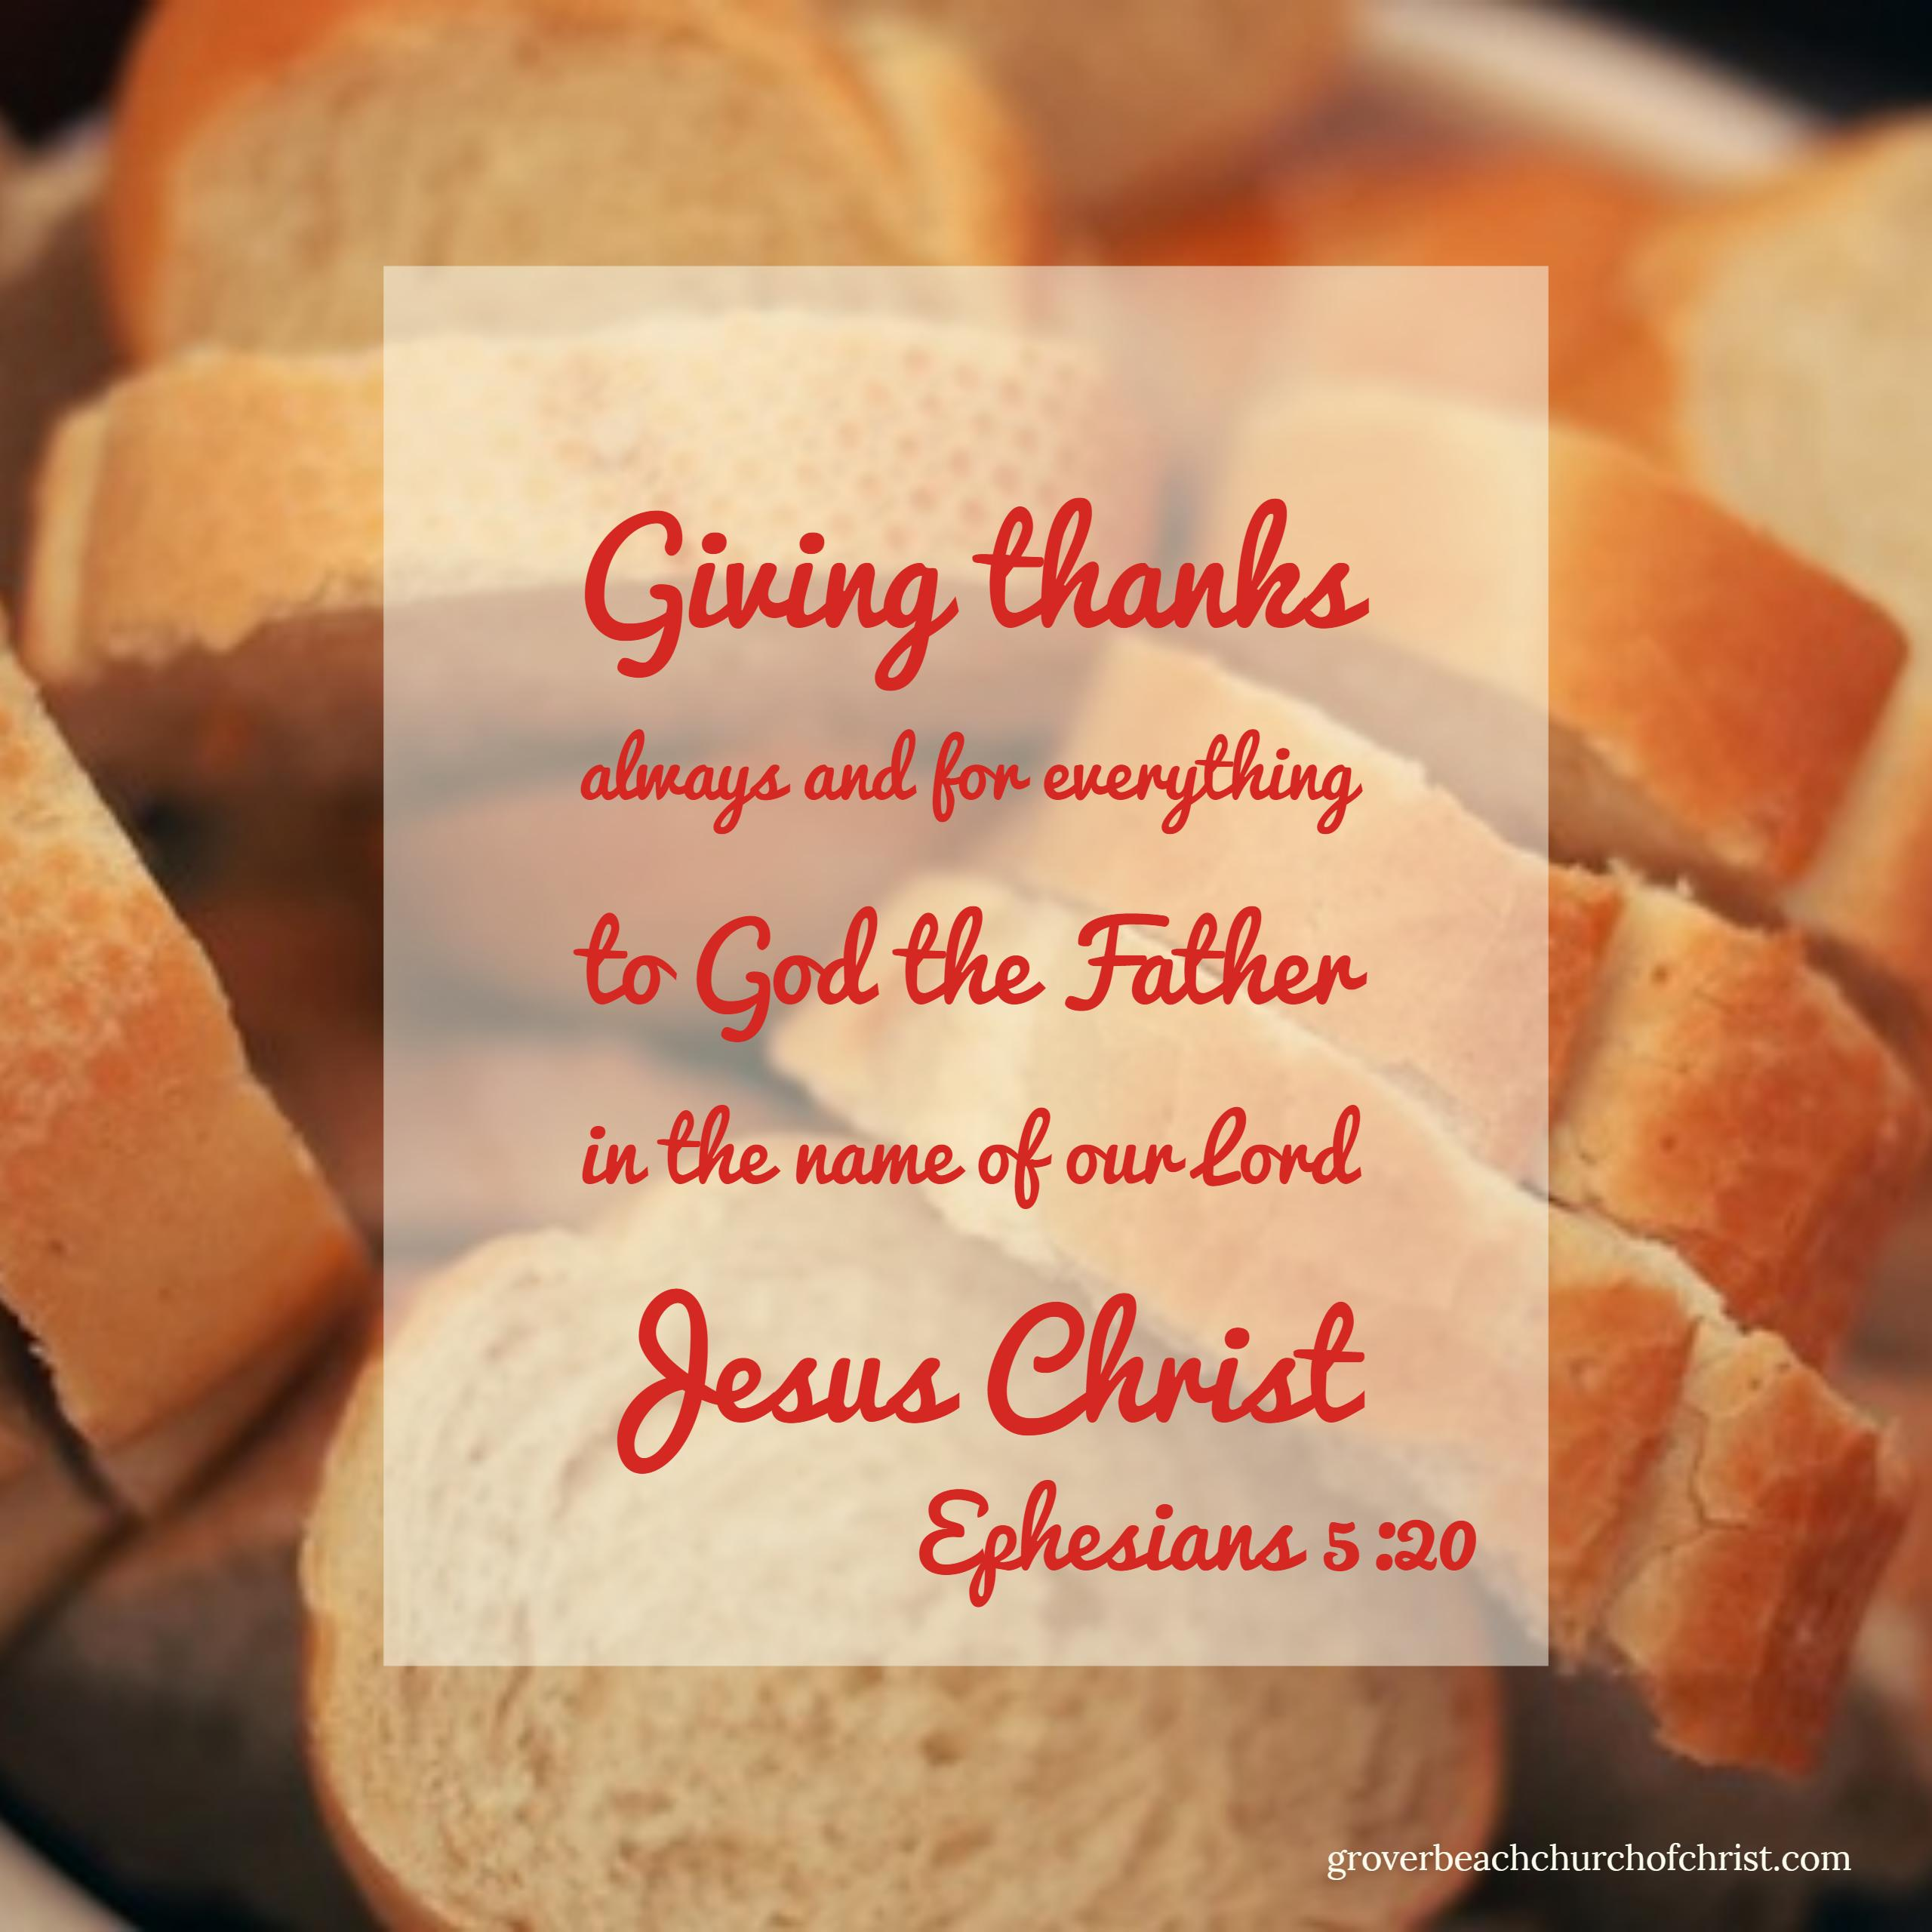 ephesians-5-20-giving-thanks-always